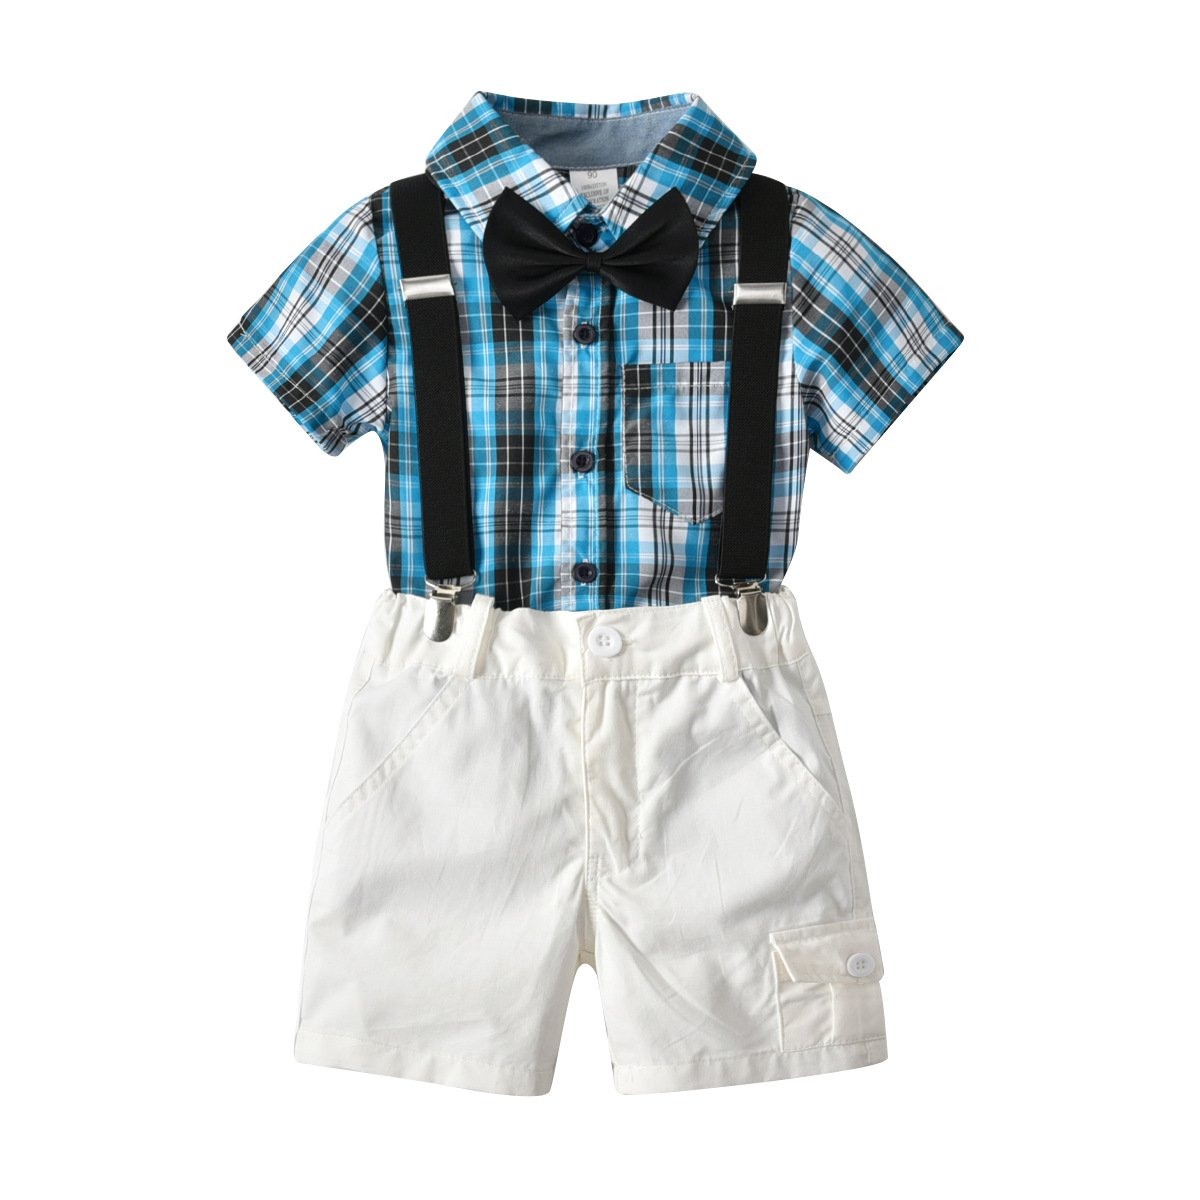 AIKSSOO Toddler Boys Short Clothing Gentle Outfit Bow tie Grid Shirt Bid Shorts Sets